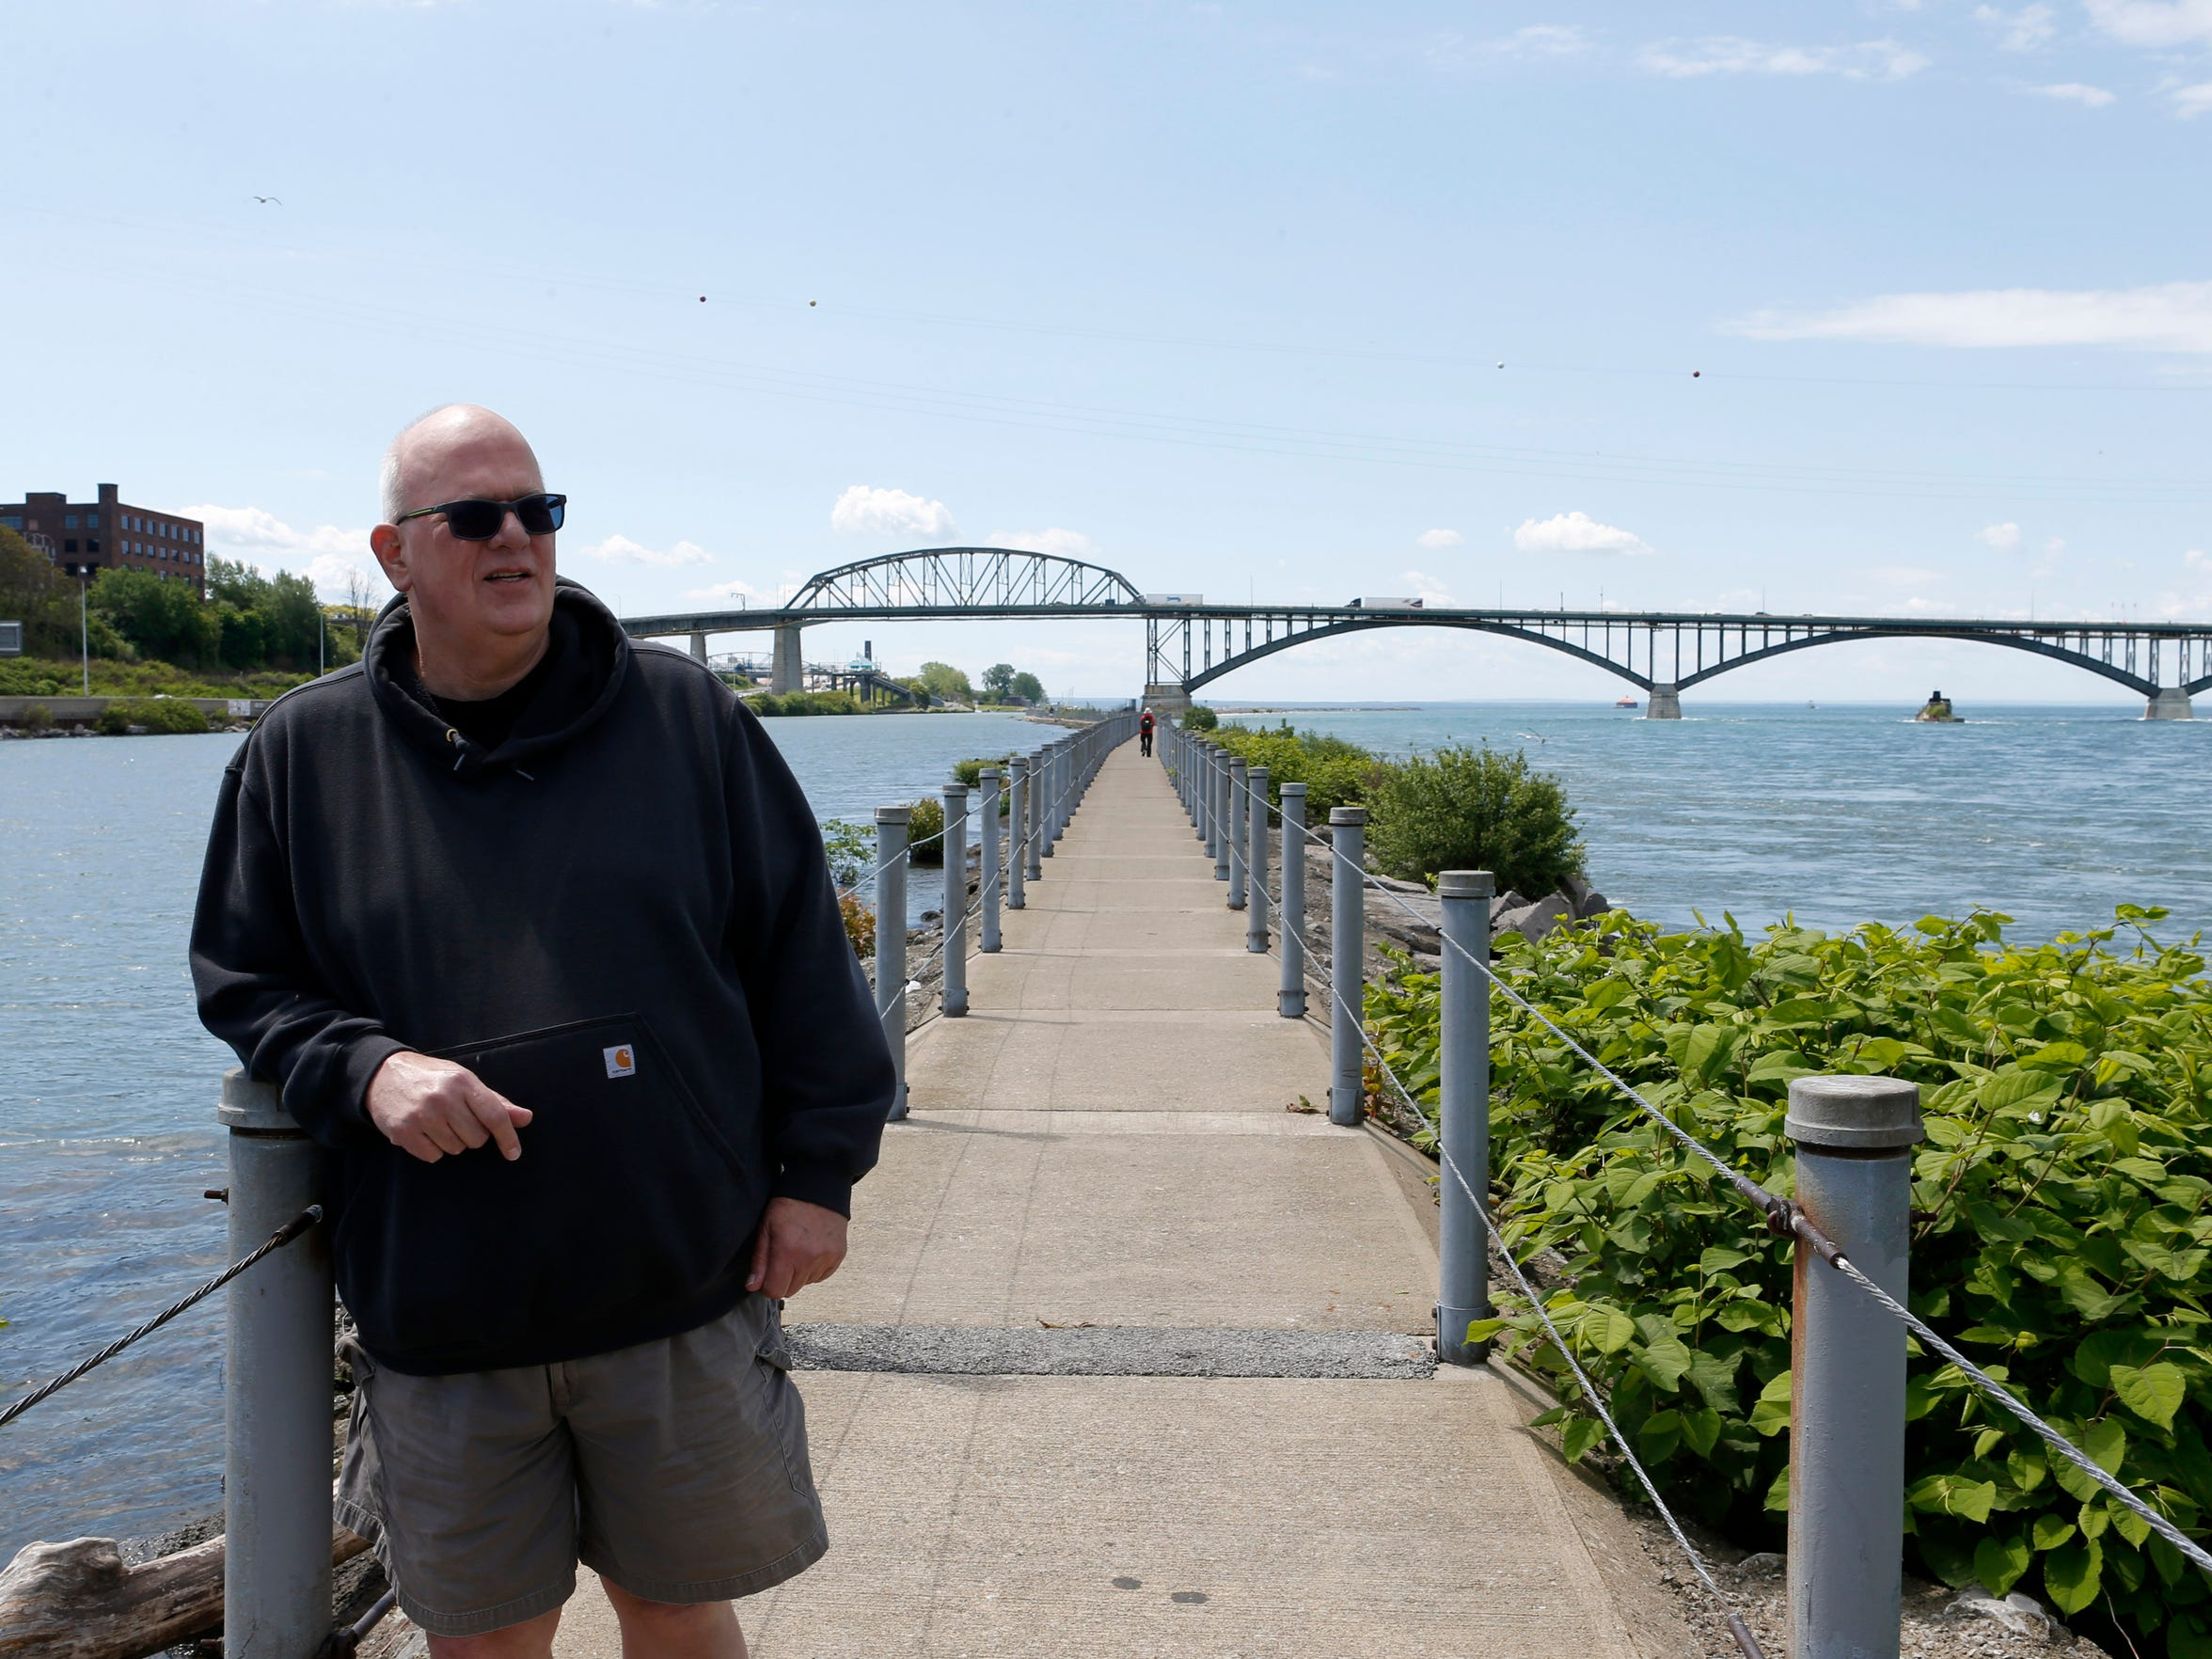 Bruce Beyer stands near the Peace Bridge 40 years after